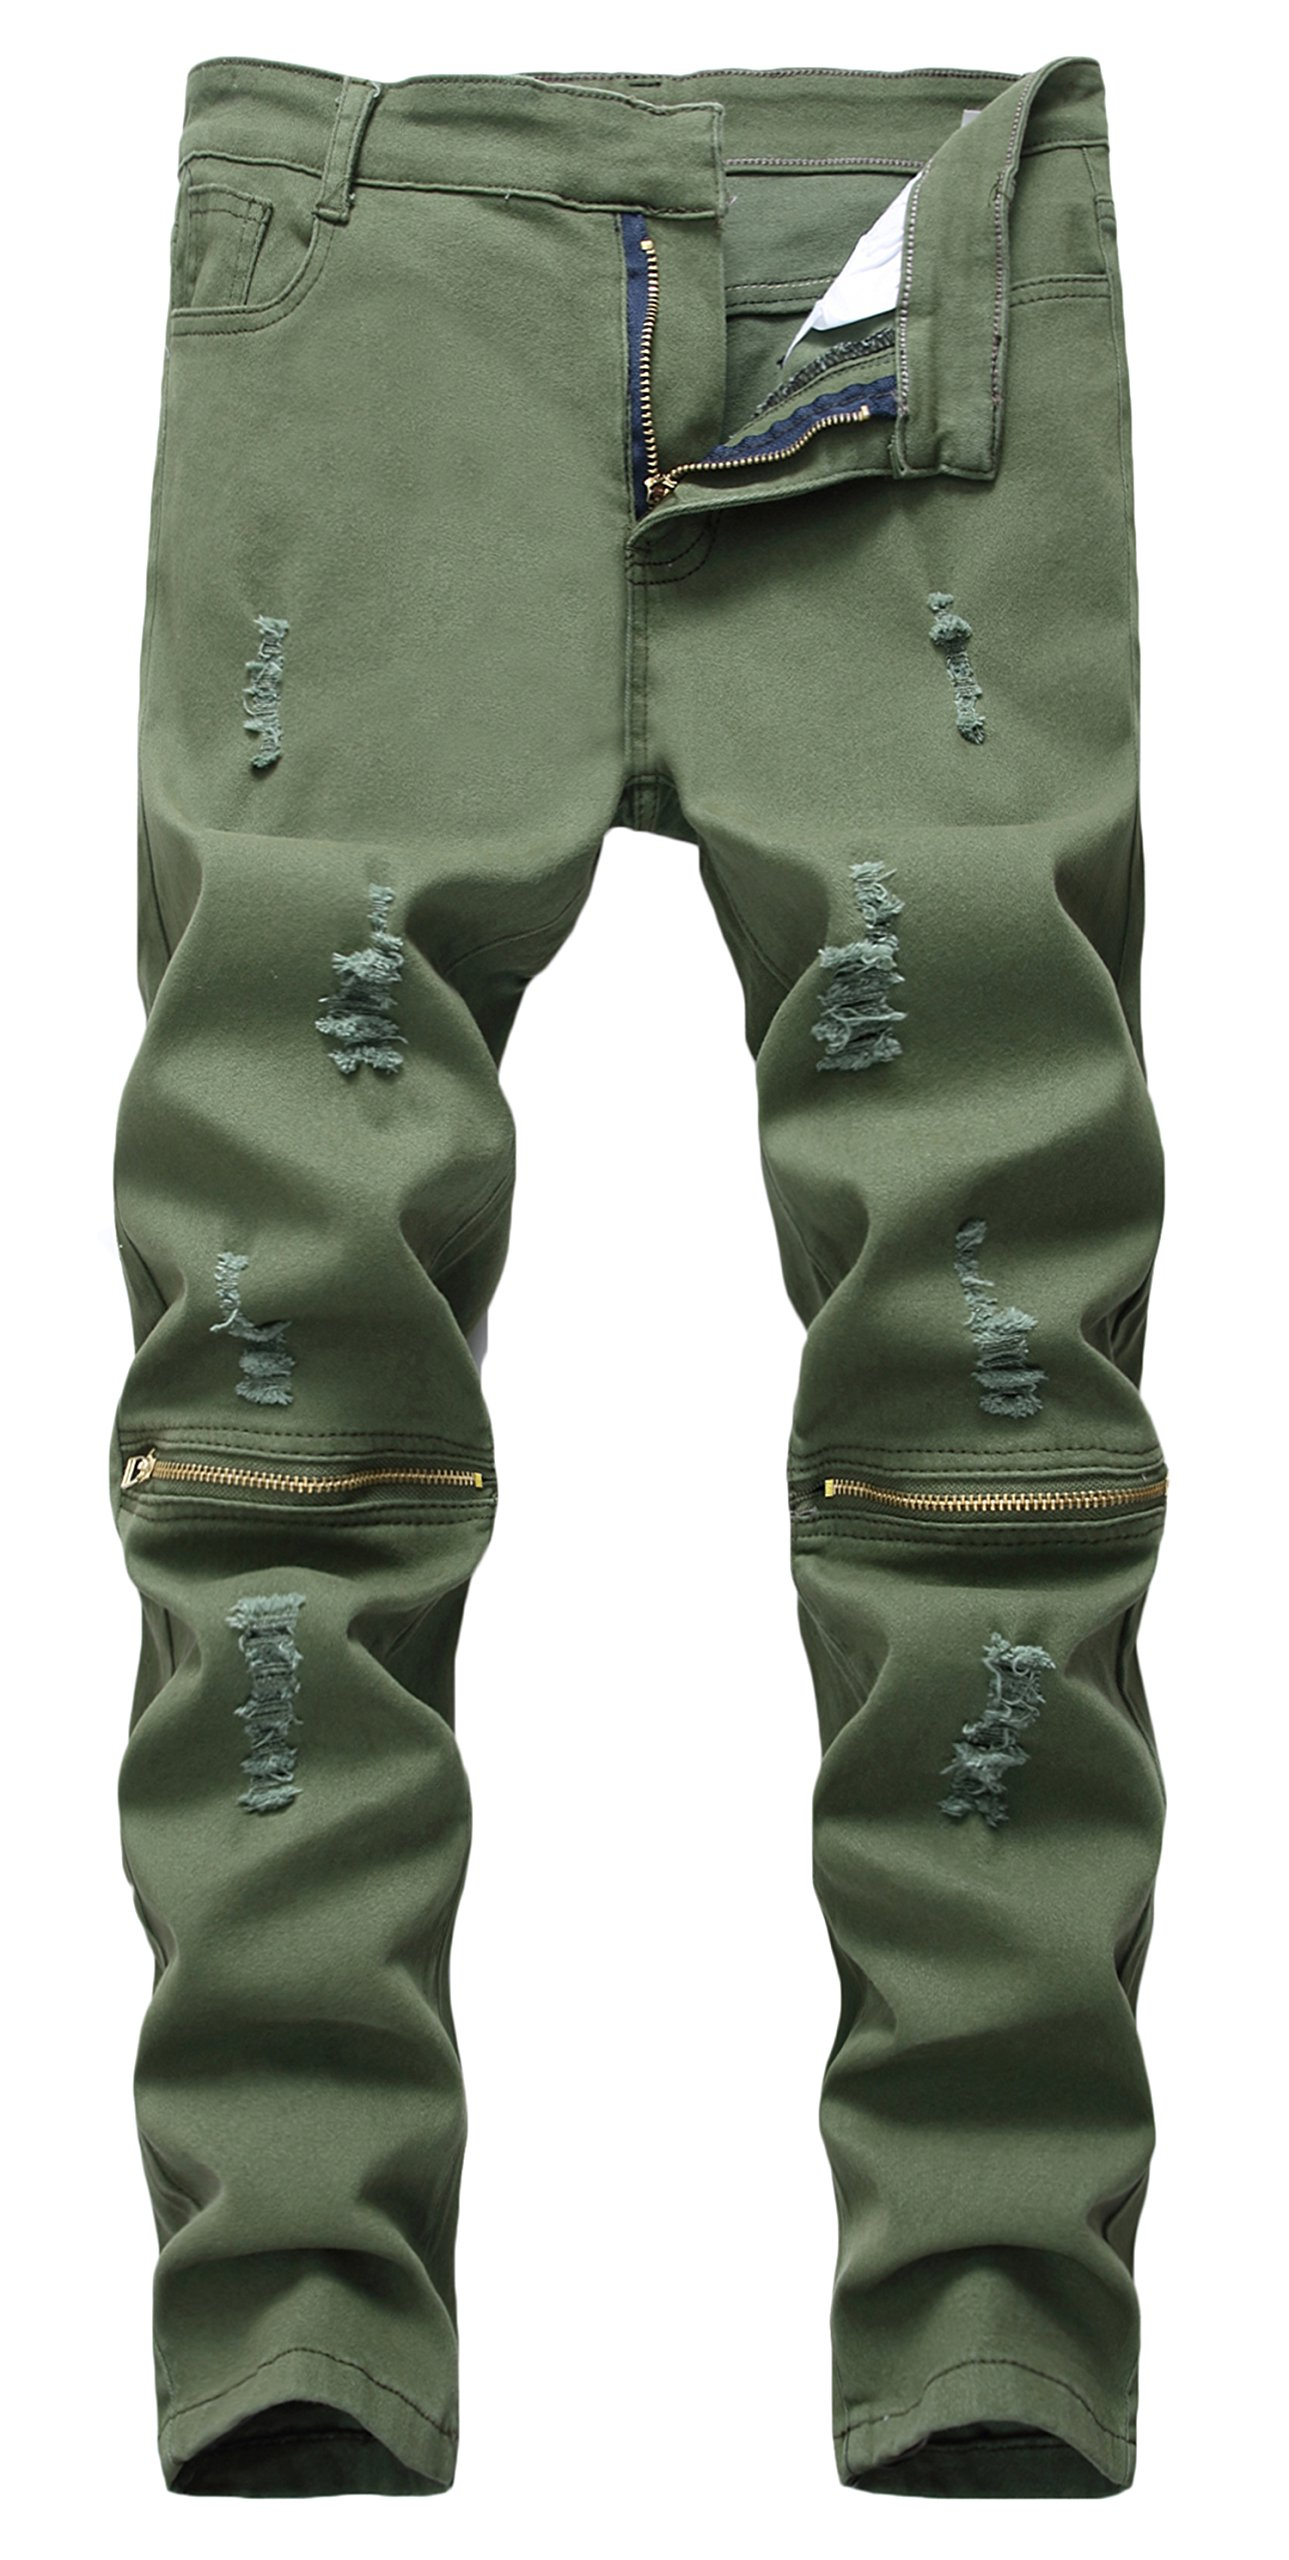 Boy's Ripped Skinny Jeans Destroyed Stretch Slim Distressed Pants (12, Army Green)